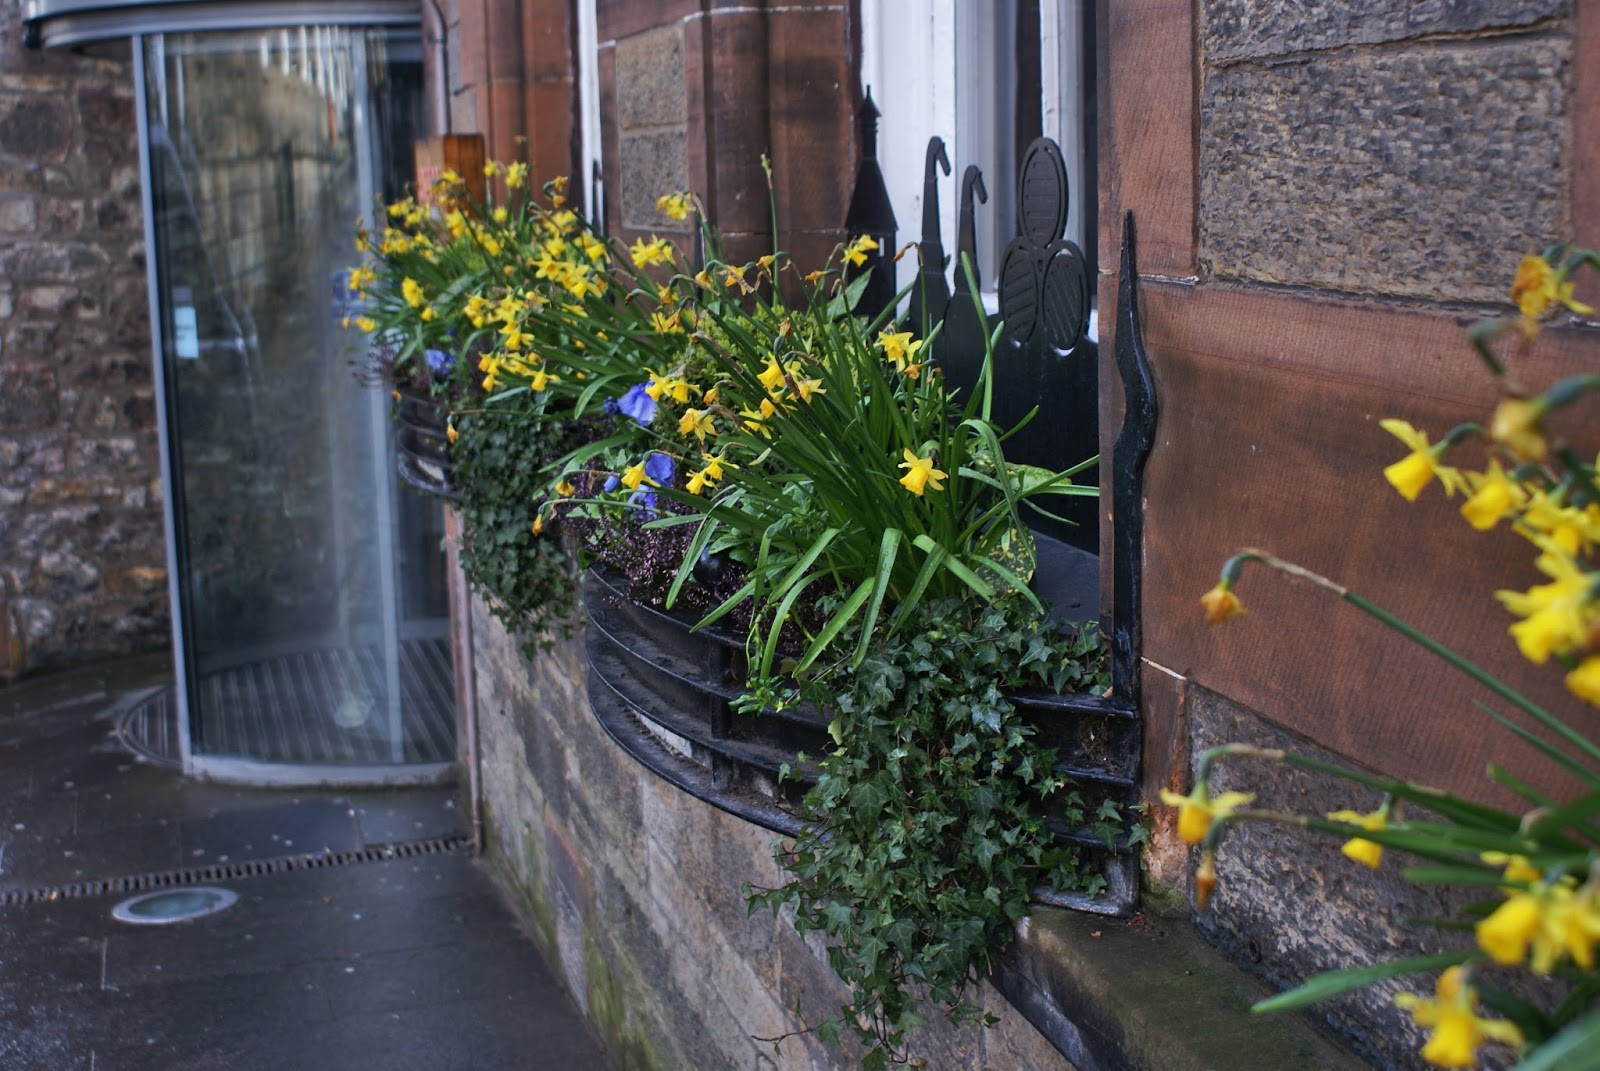 edinburgh scotland uk high street royal mile flowers